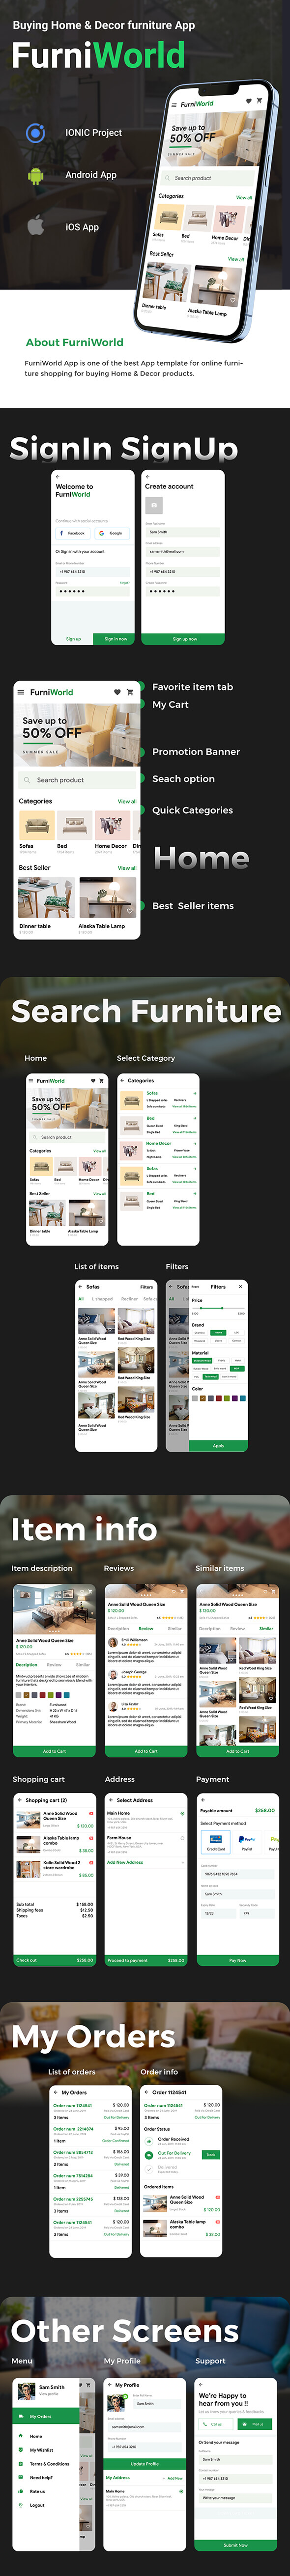 Online Furniture Selling Android App + Furniture Buying iOS App Template | IONIC 3 | FurniWorld - 3